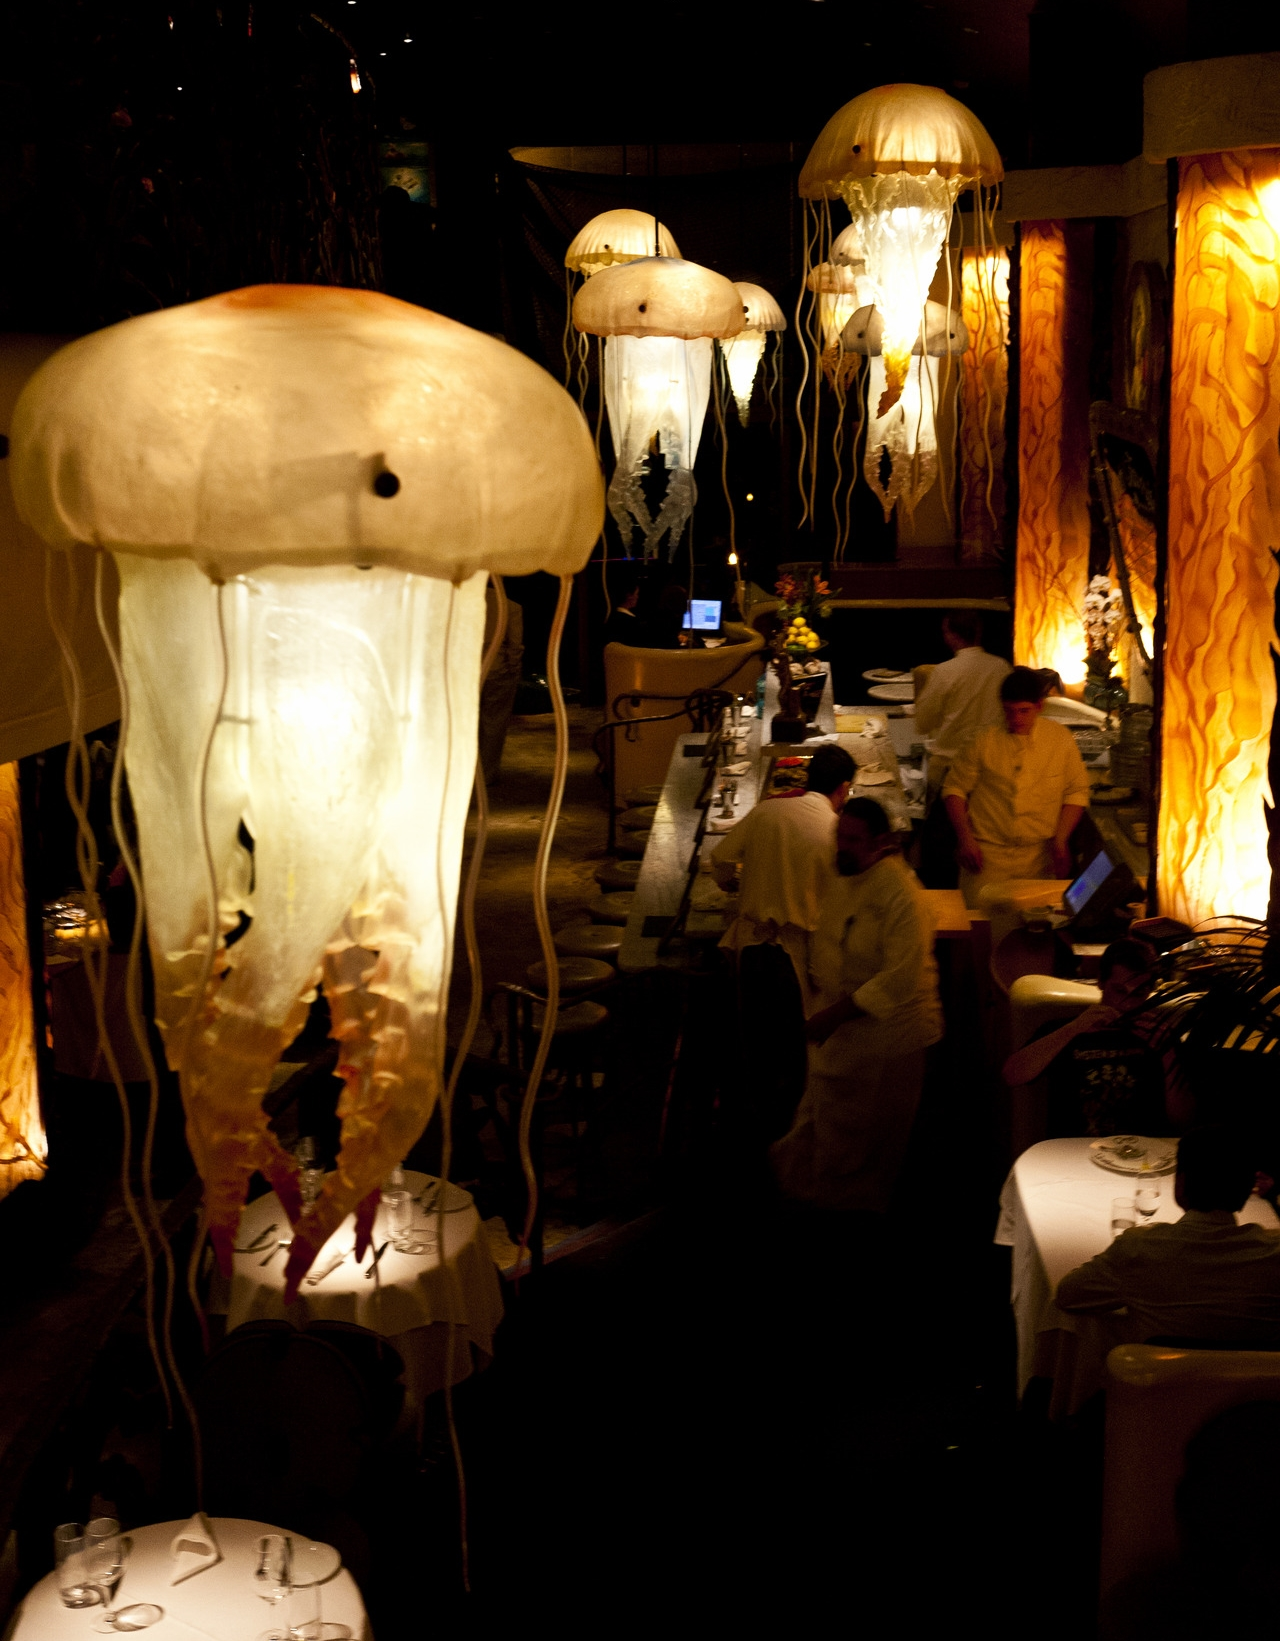 Farallon, an upscale eatery with a raw bar and an undersea-themed décor, is one of many wonderful restaurants in Union Square.